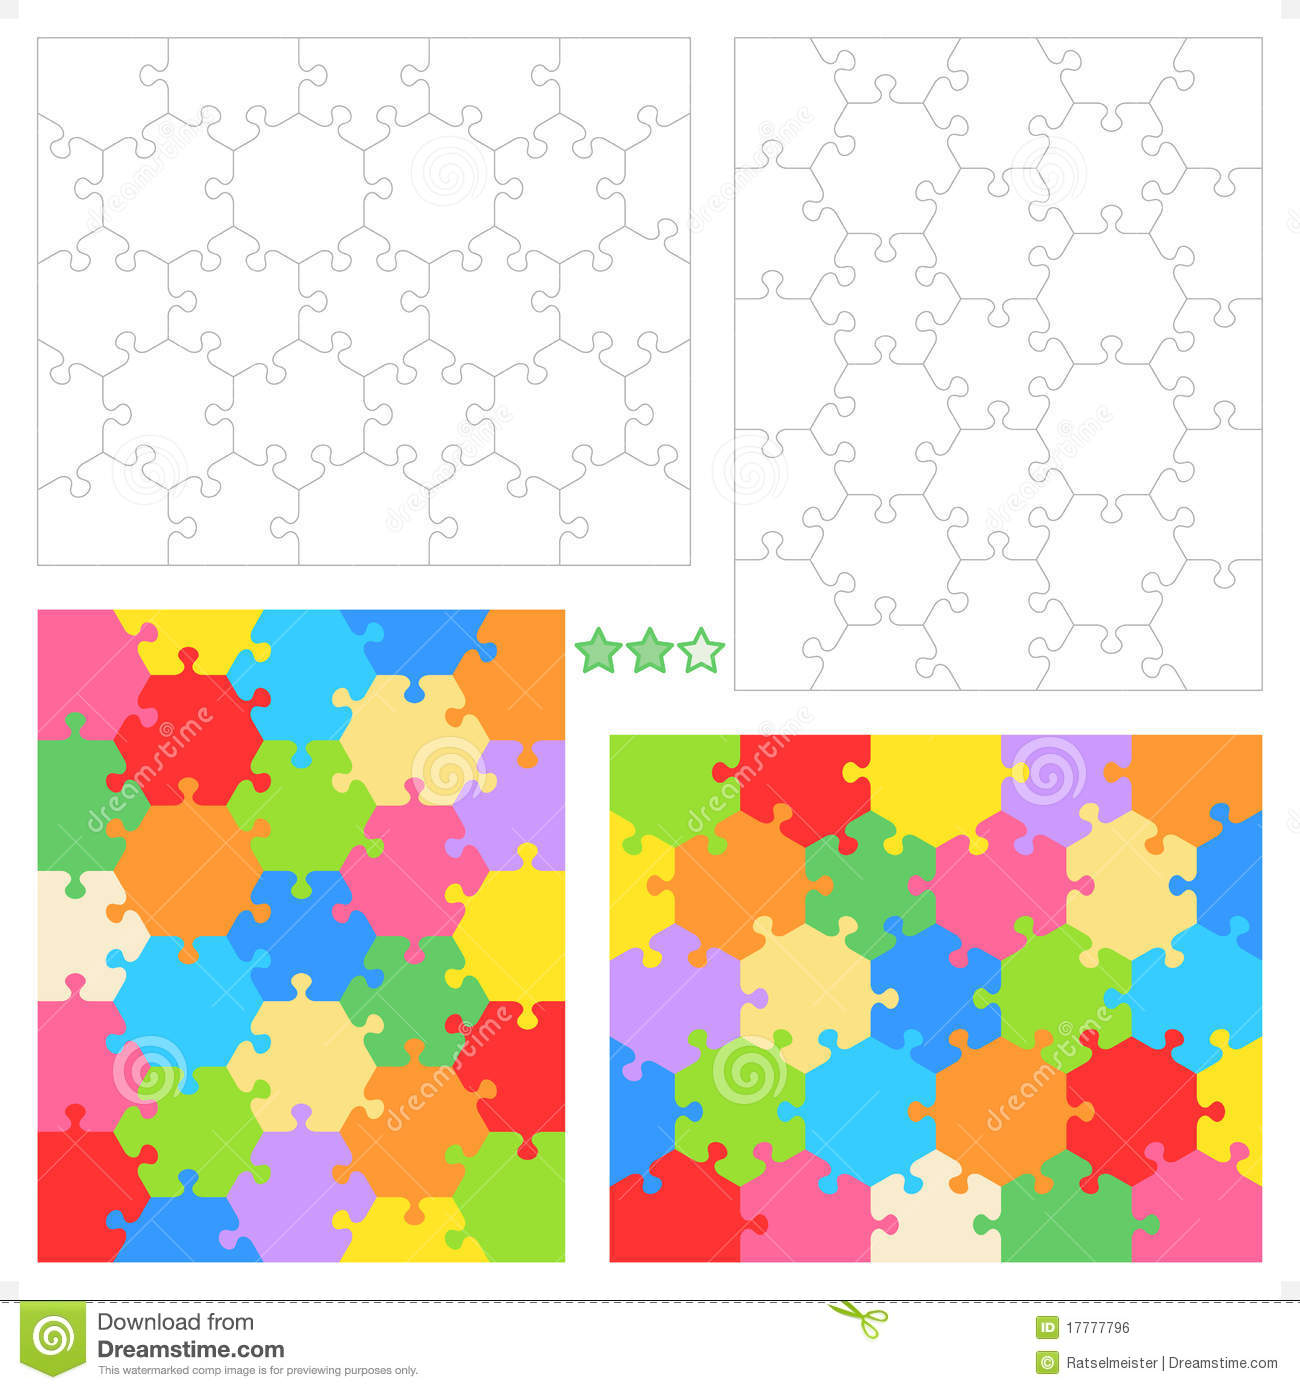 Hexagonal jigsaw puzzles stock vector image of hexagonal 17777796 hexagonal jigsaw puzzles pronofoot35fo Choice Image